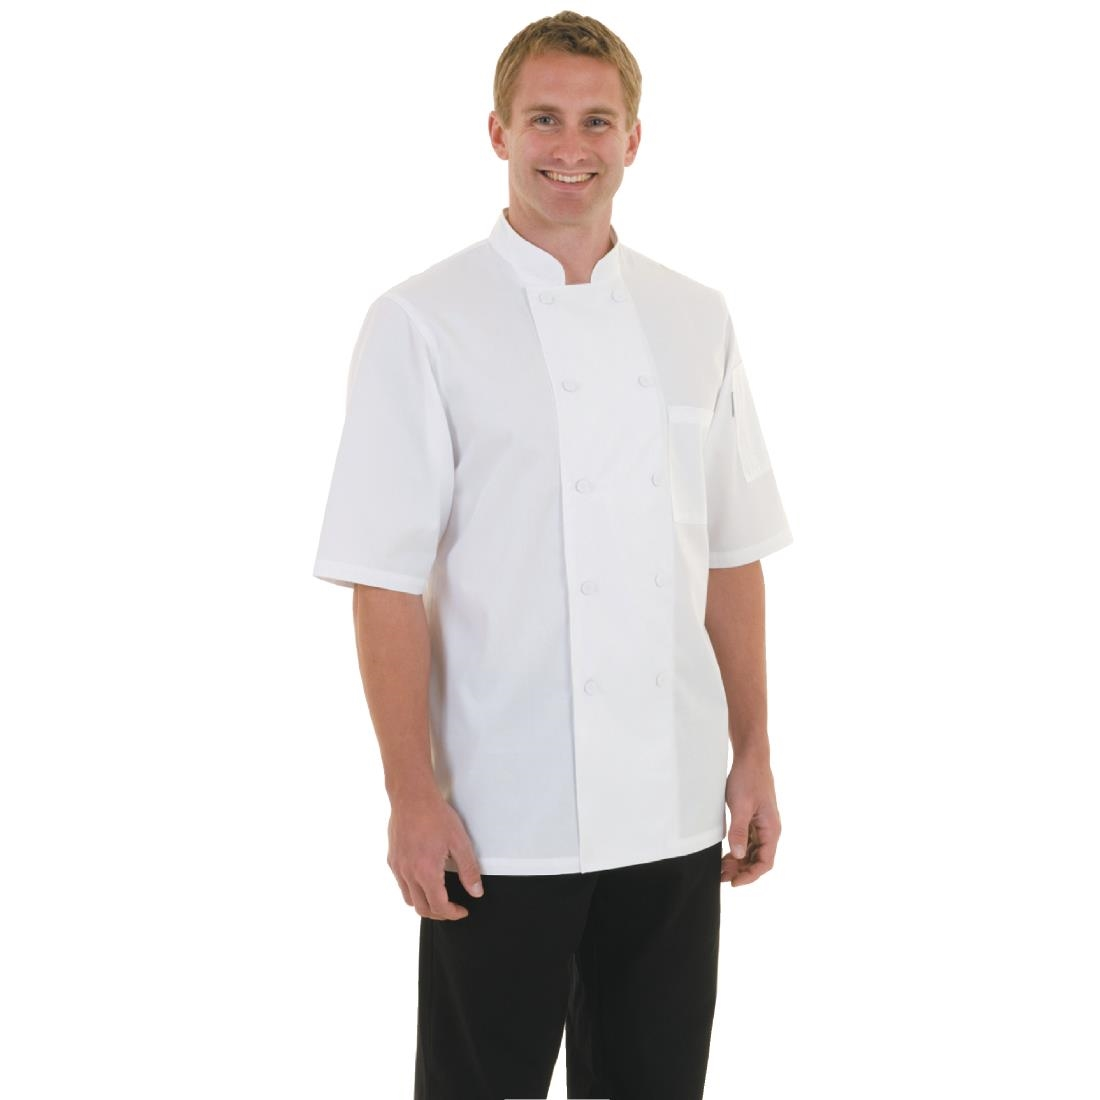 a71793e74 Chef Works Unisex Montreal Cool Vent Chefs Jacket White